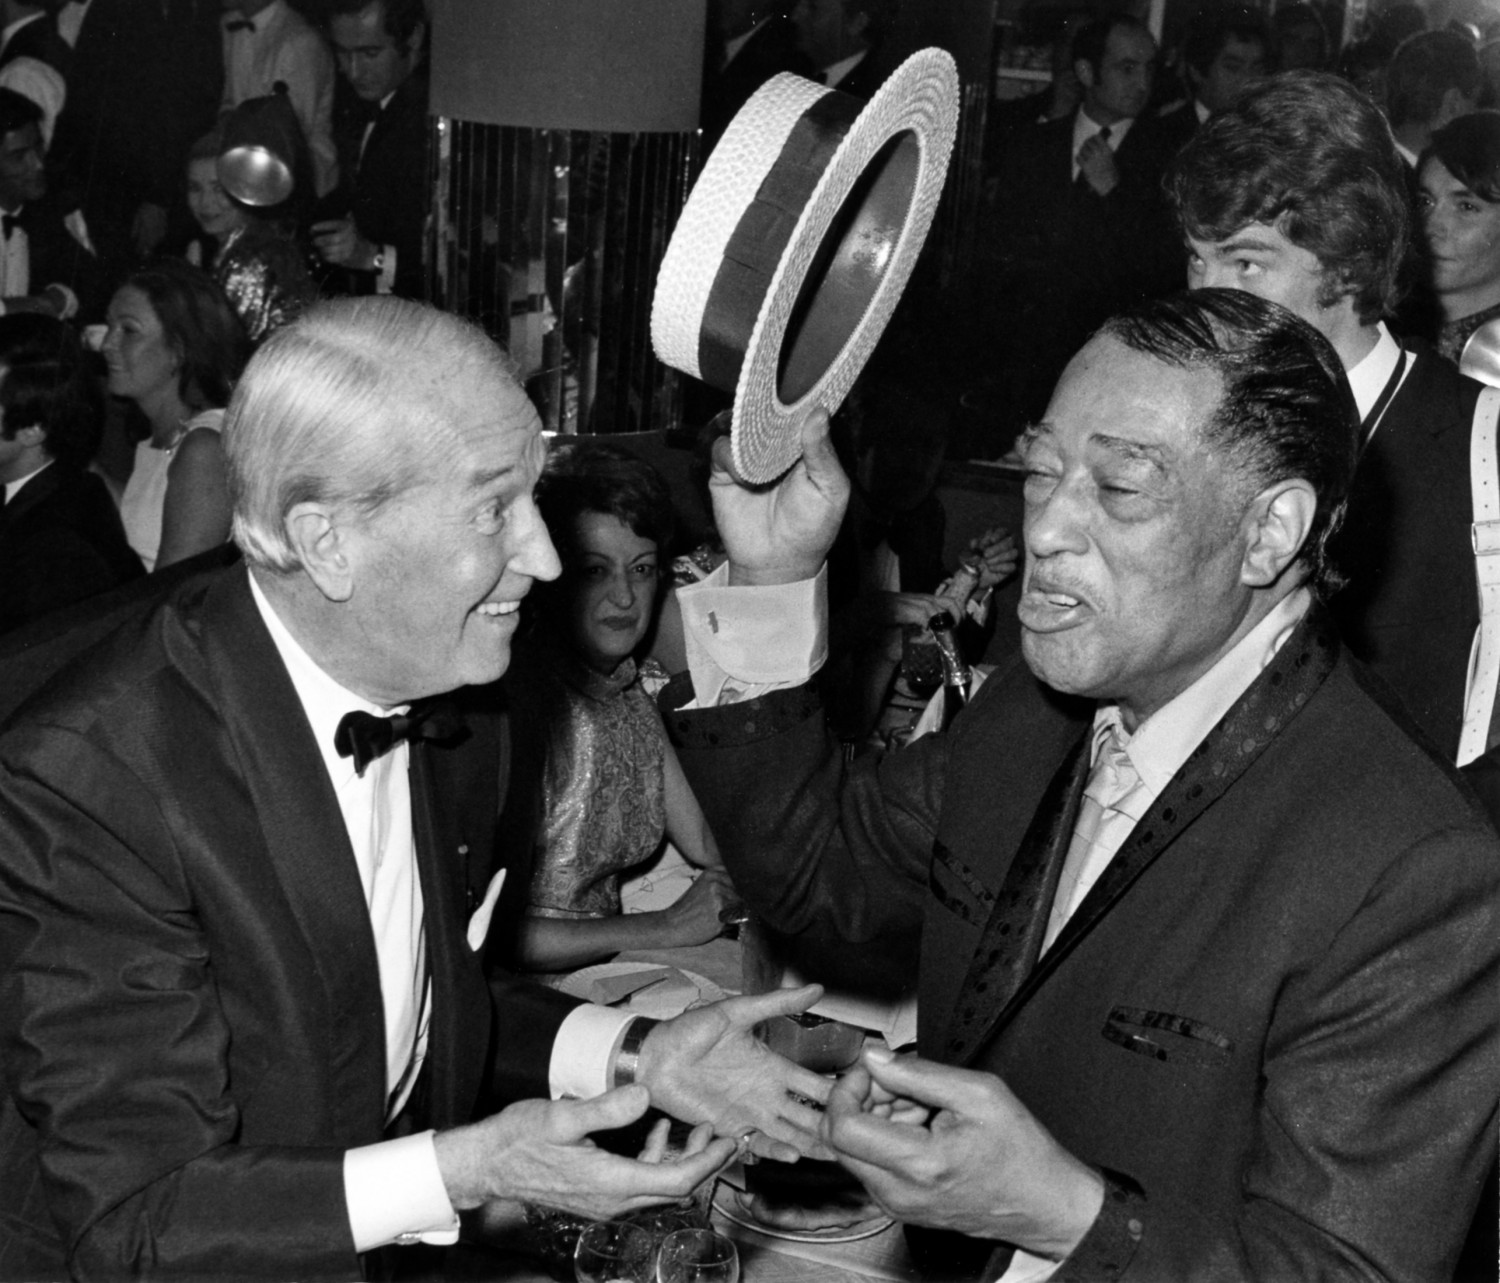 p. 161, Avec Maurice Chevalier, à l'Alcazar,Paris, 20 novembre 1969, X, Collection Christian Bonnet